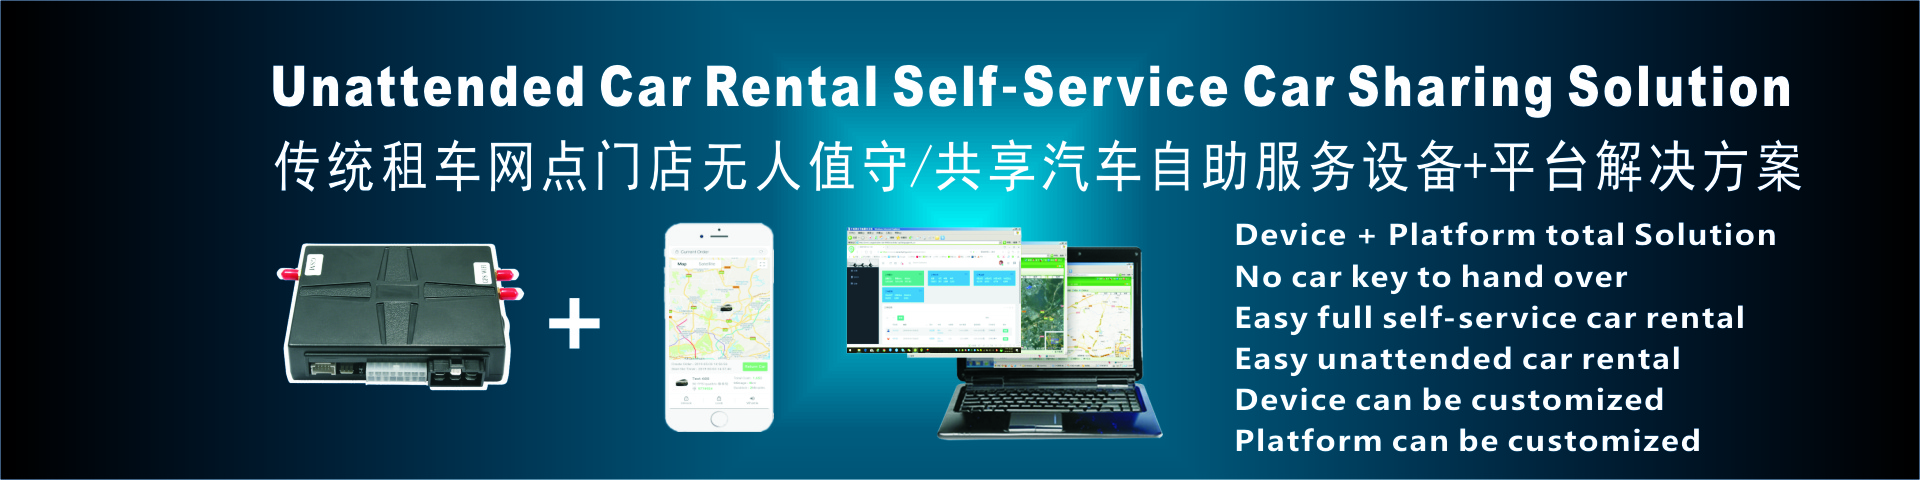 Unattended Car Rental Self-Service Car Sharing Solution